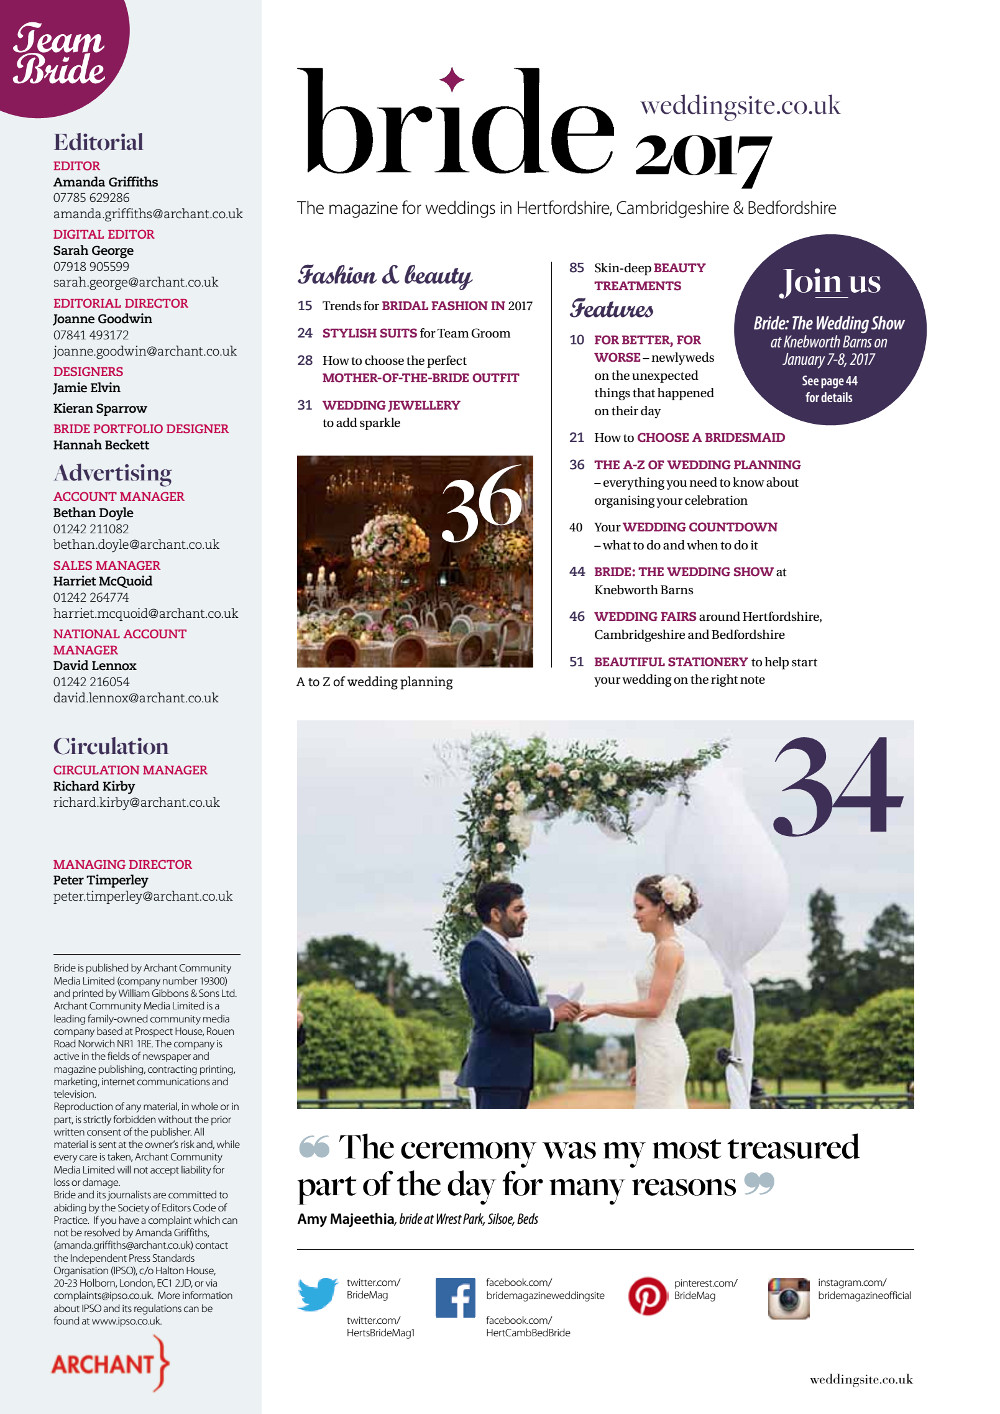 the-latest-issue-of-hertfordshire-cambridgeshire-bedfordshire-bride-is-out-now-2